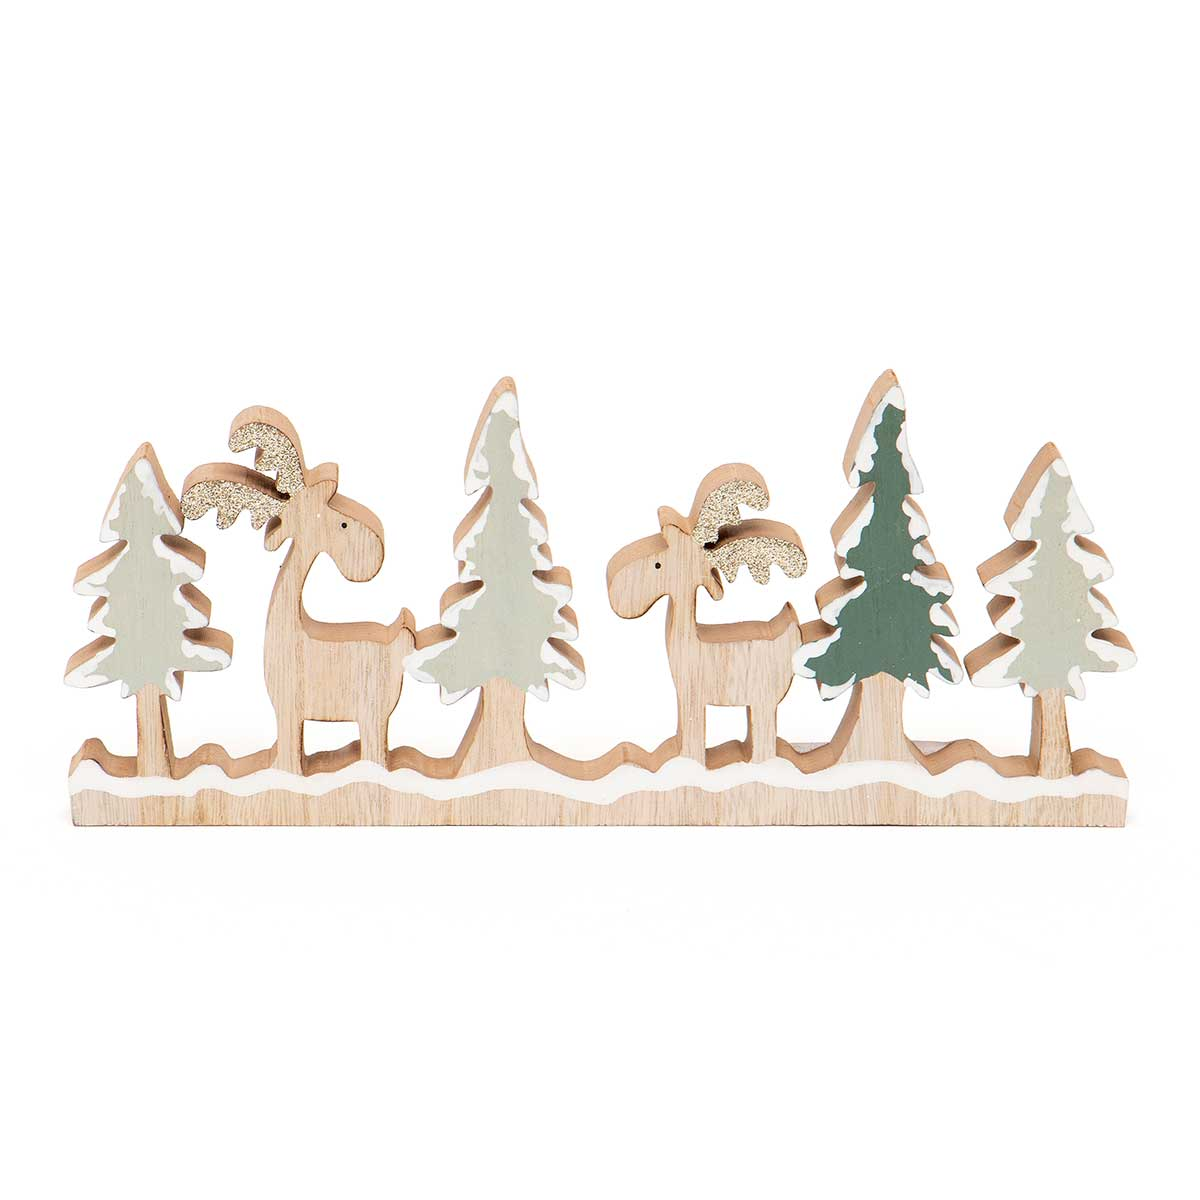 WOOD DEER AND TREE WITH GLITTER SHELF SITTER